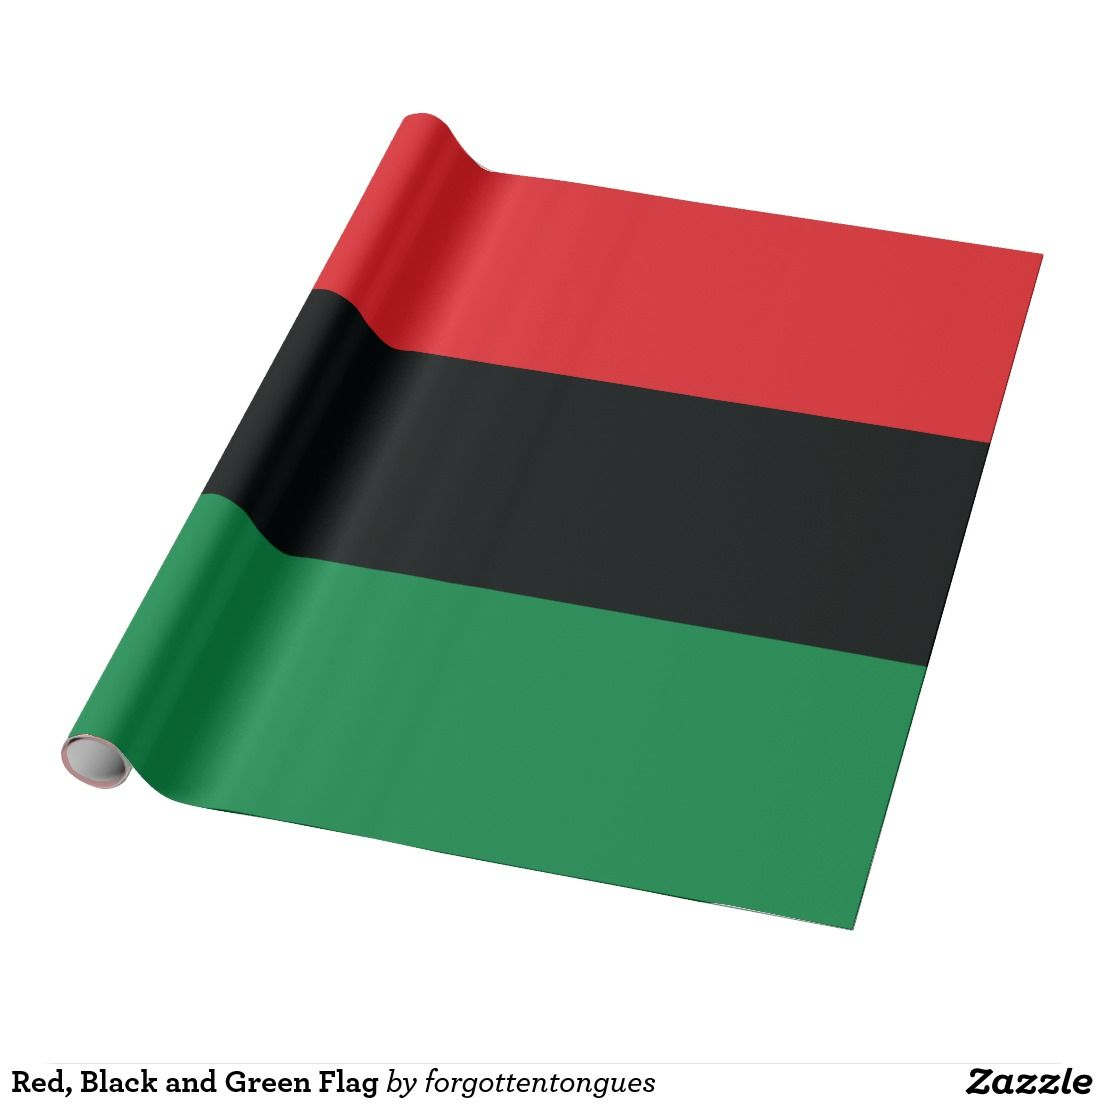 Red Black And Green Flag Wrapping Paper Zazzle Com In 2020 Red Black And Green Flag Wrapping Paper Red